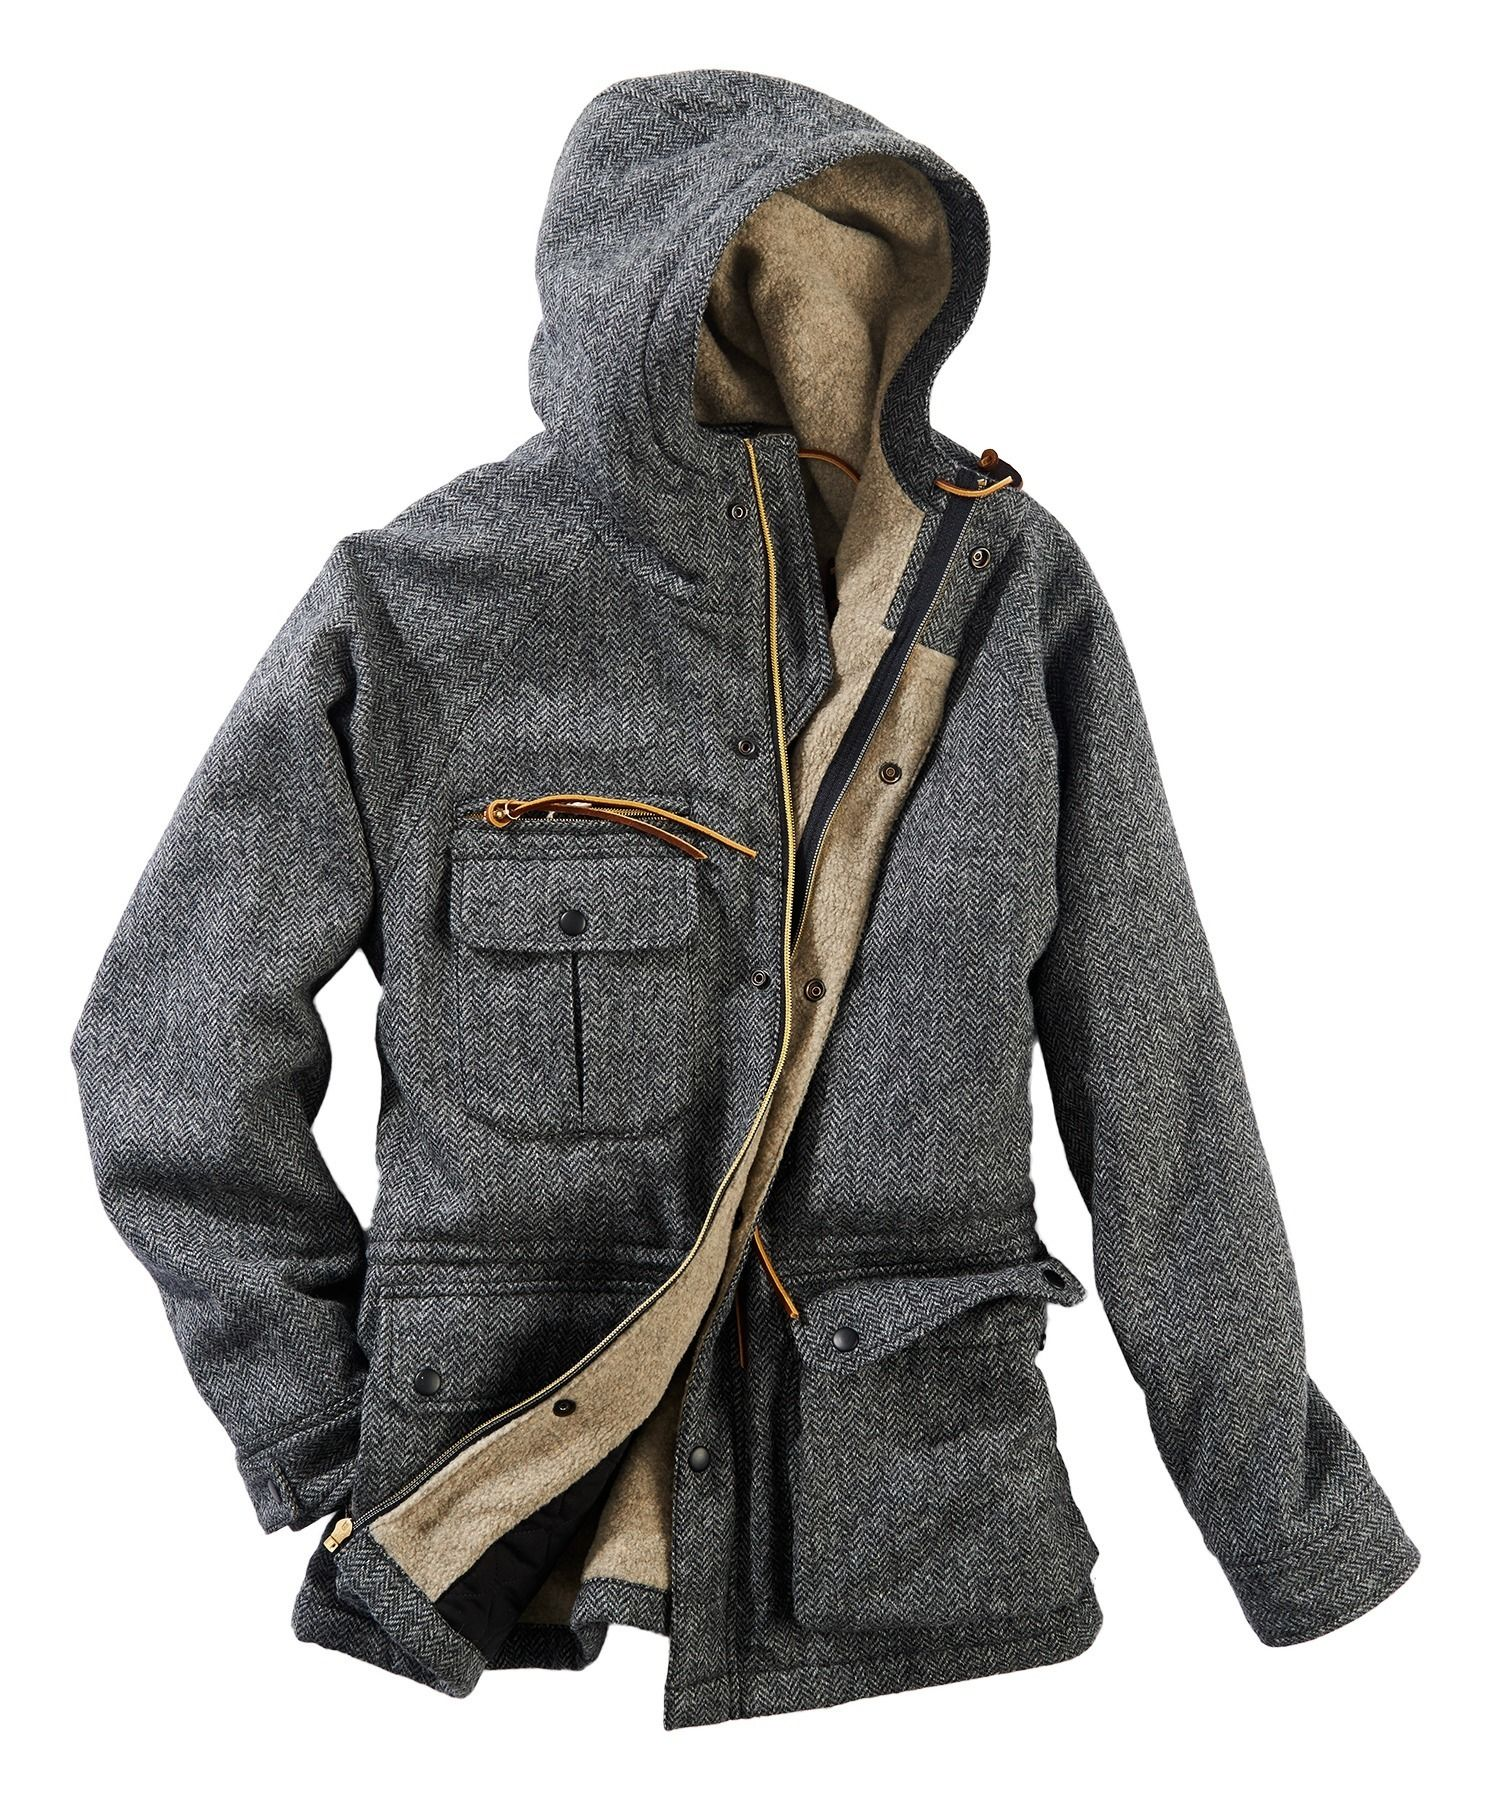 Holiday Gift Guide Outdoor clothing, Parka and Mountains